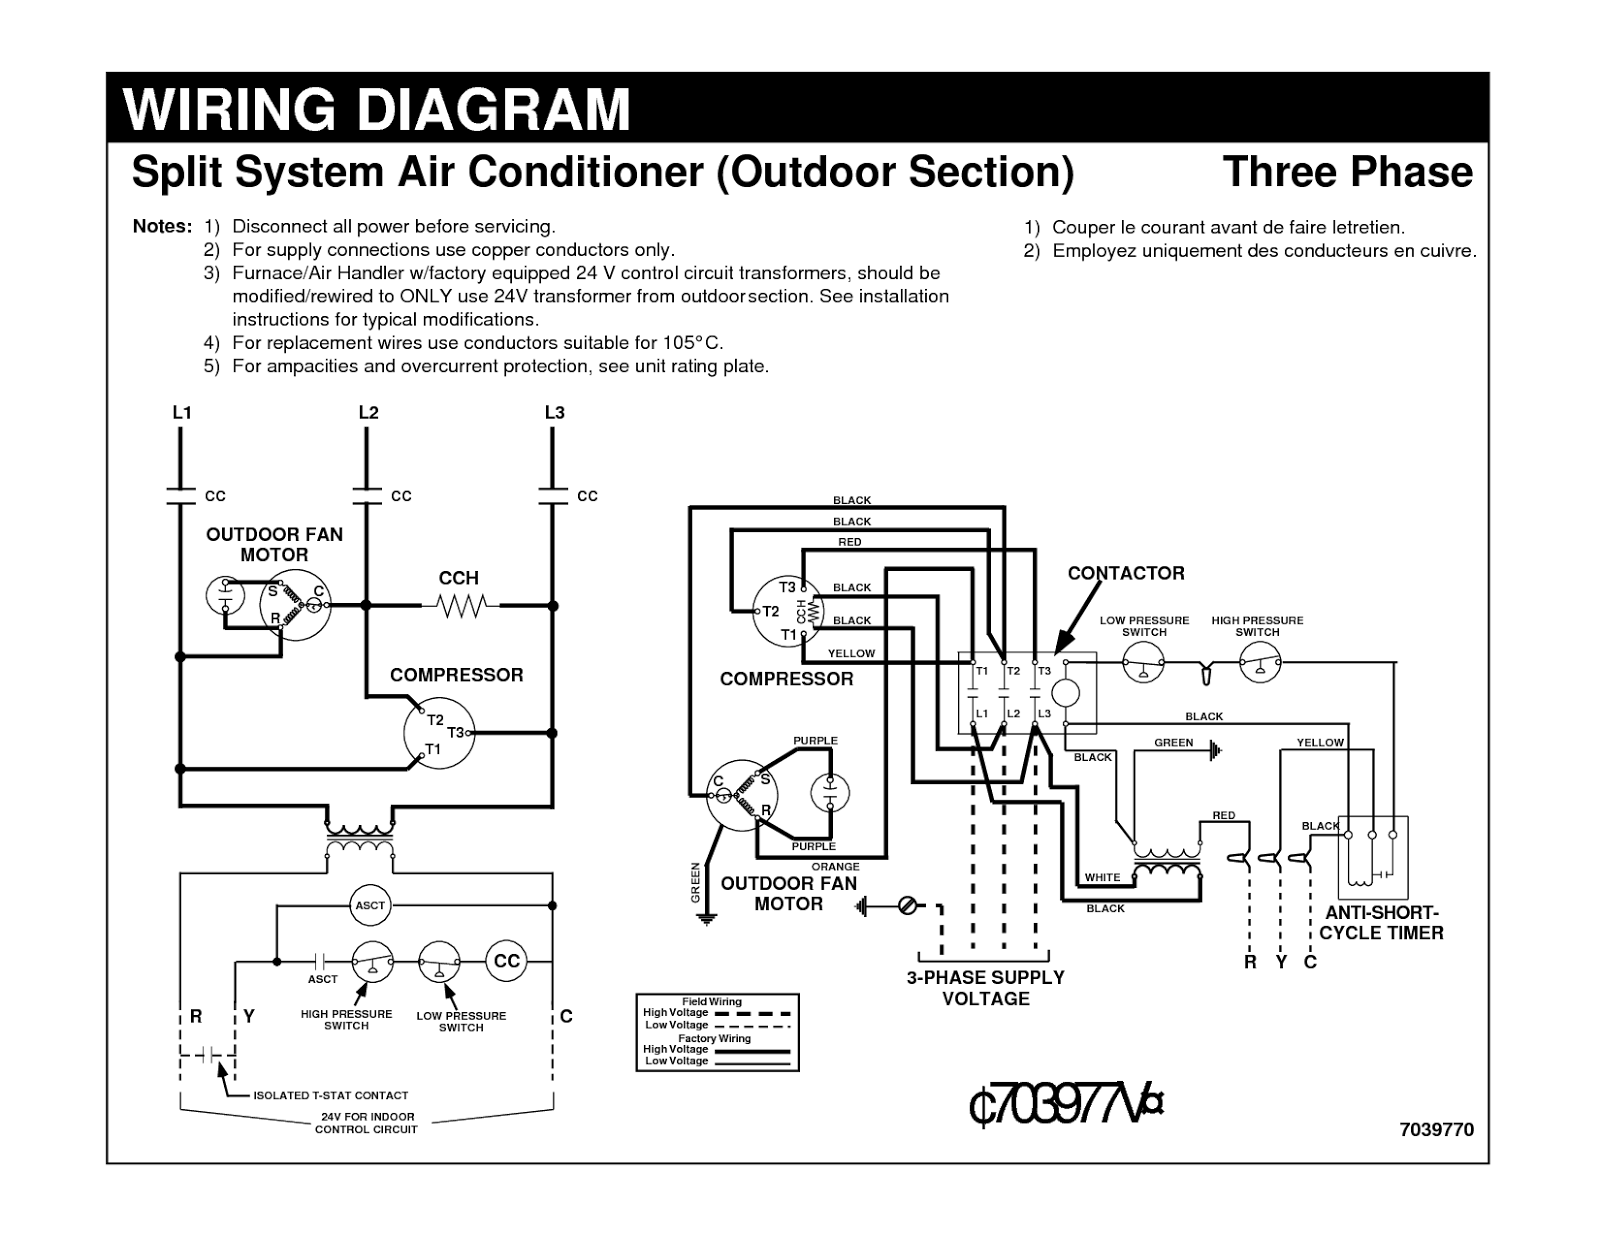 Split Indoor Unit Wiring Diagram on wiring diagram for nordyne heat pump